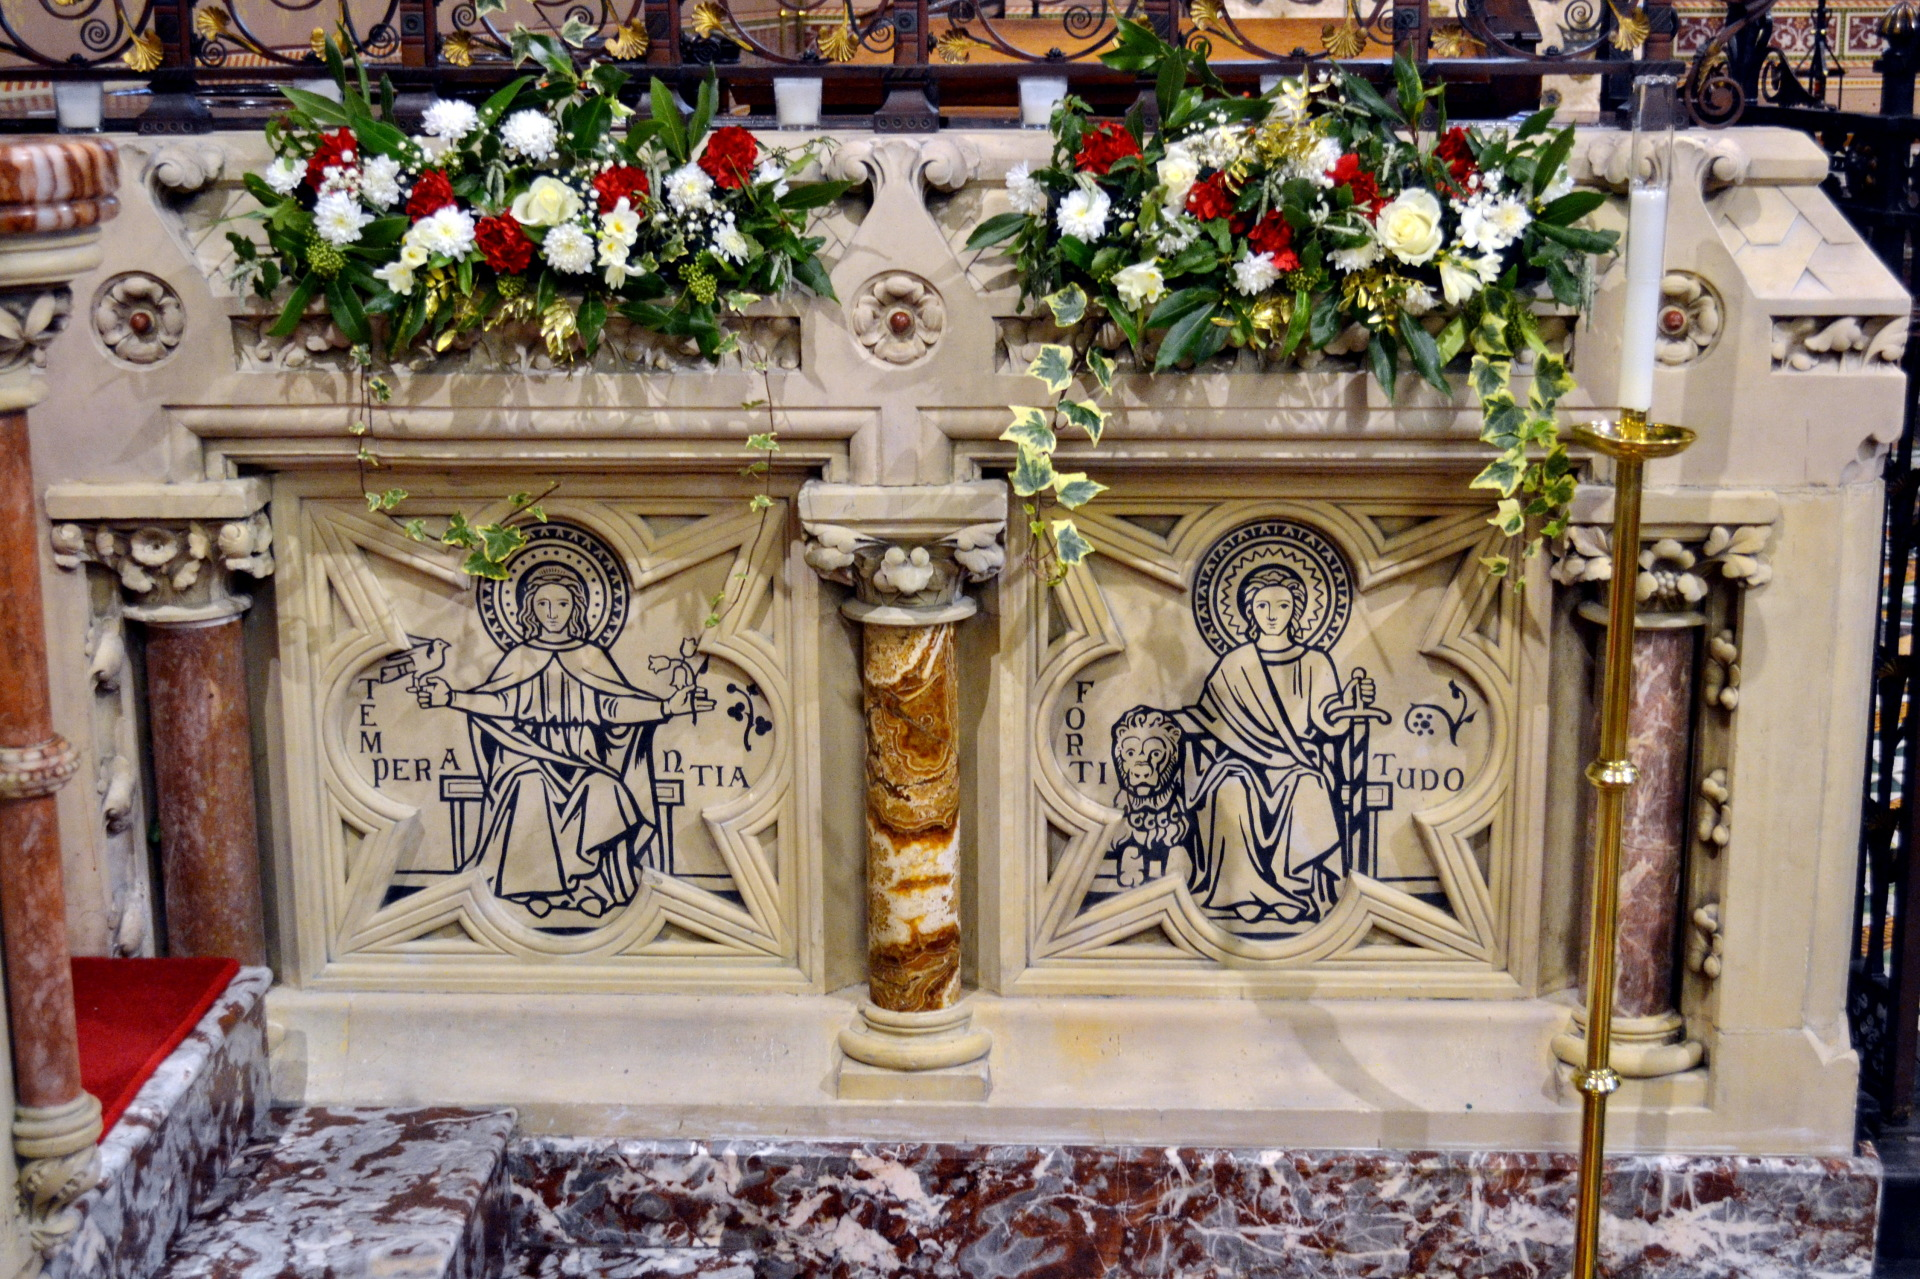 The Cardinal Virtues of Temperance & Fortitude